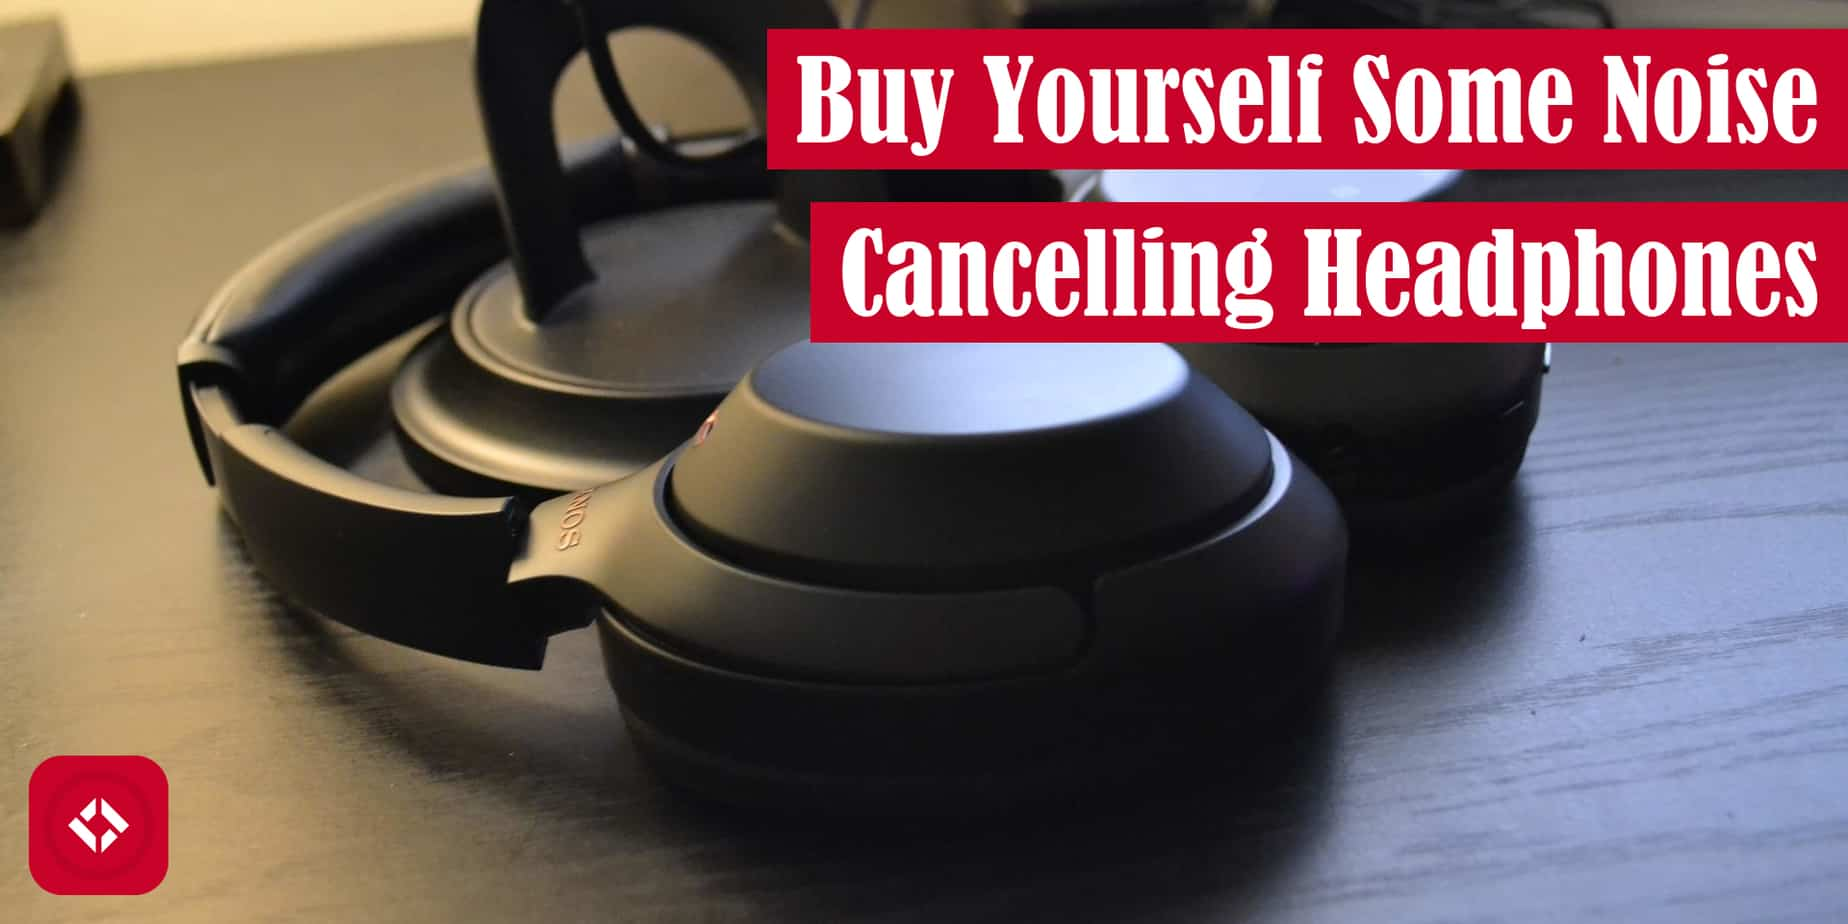 Buy Yourself Some Noise-Cancelling Headphones Featured Image